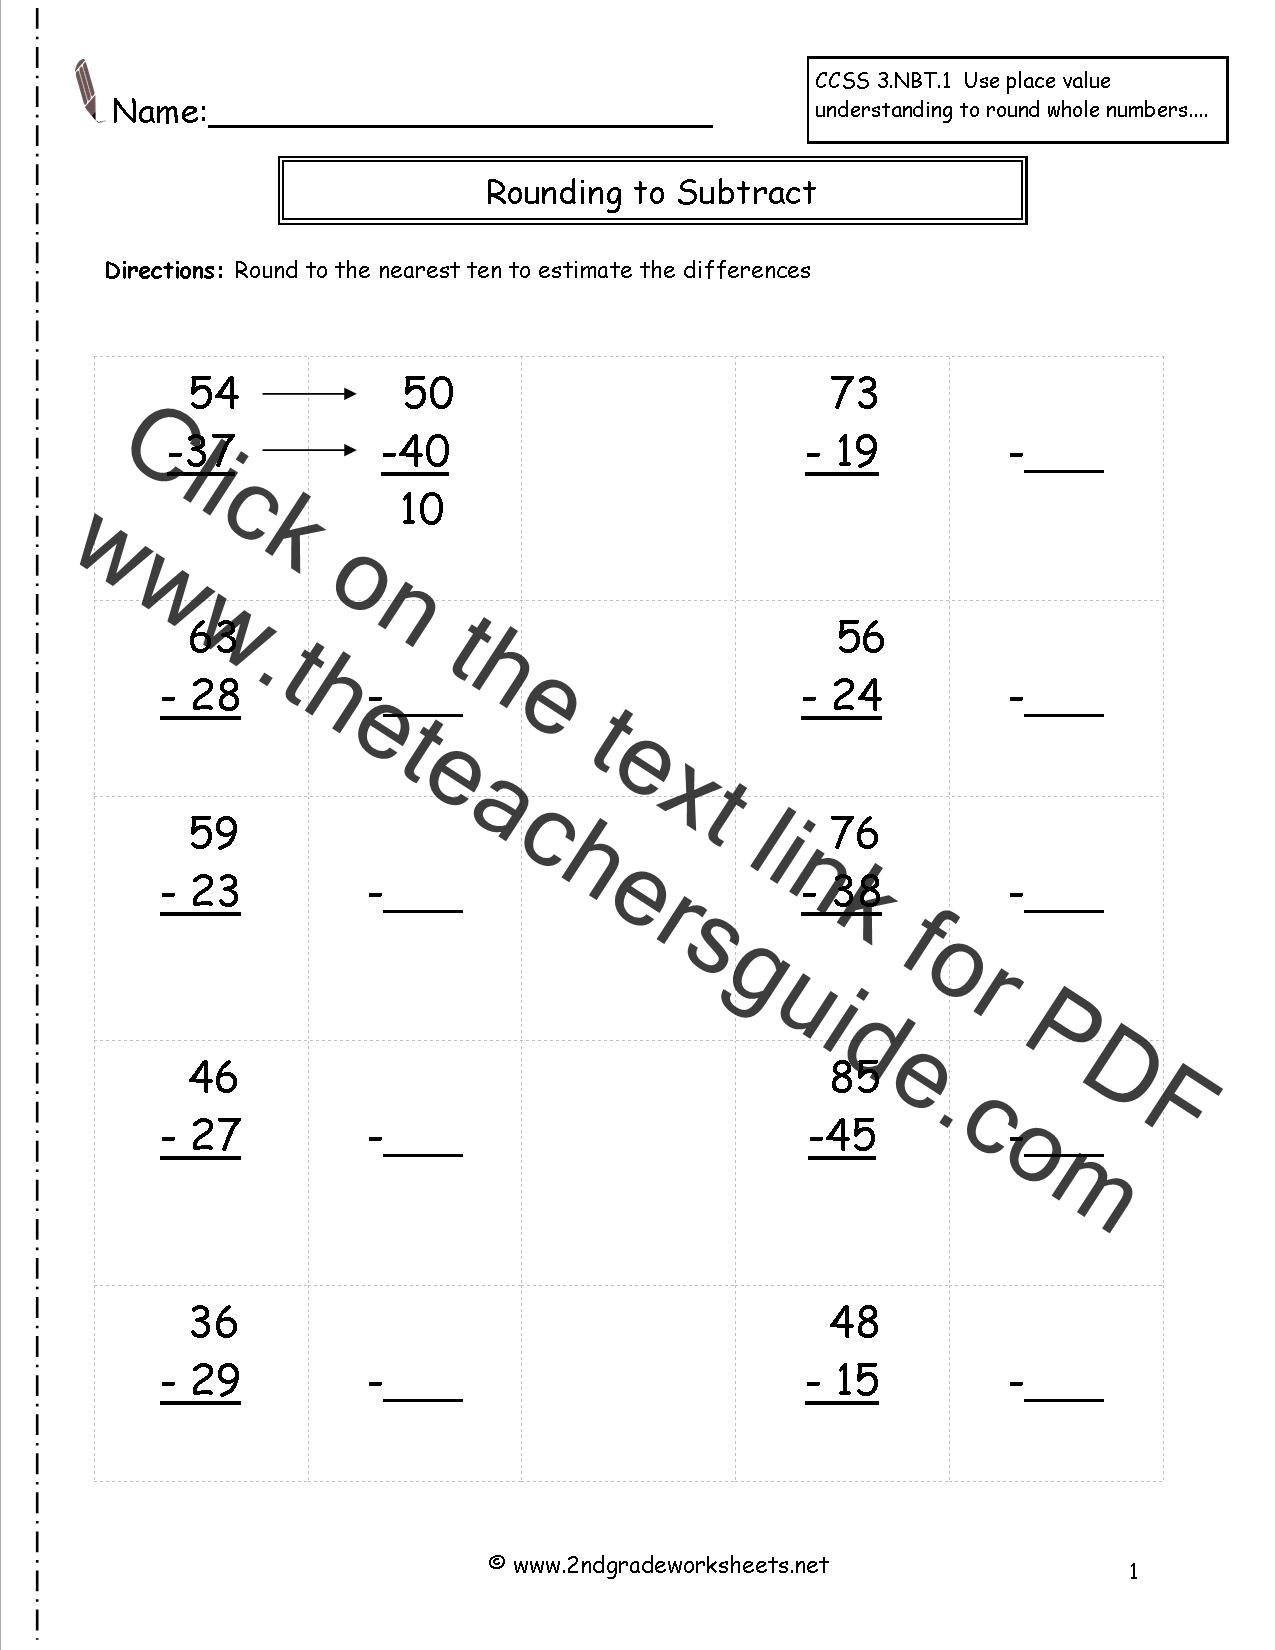 Uncategorized Rounding Numbers Worksheet rounding whole numbers worksheets to estimate the differences